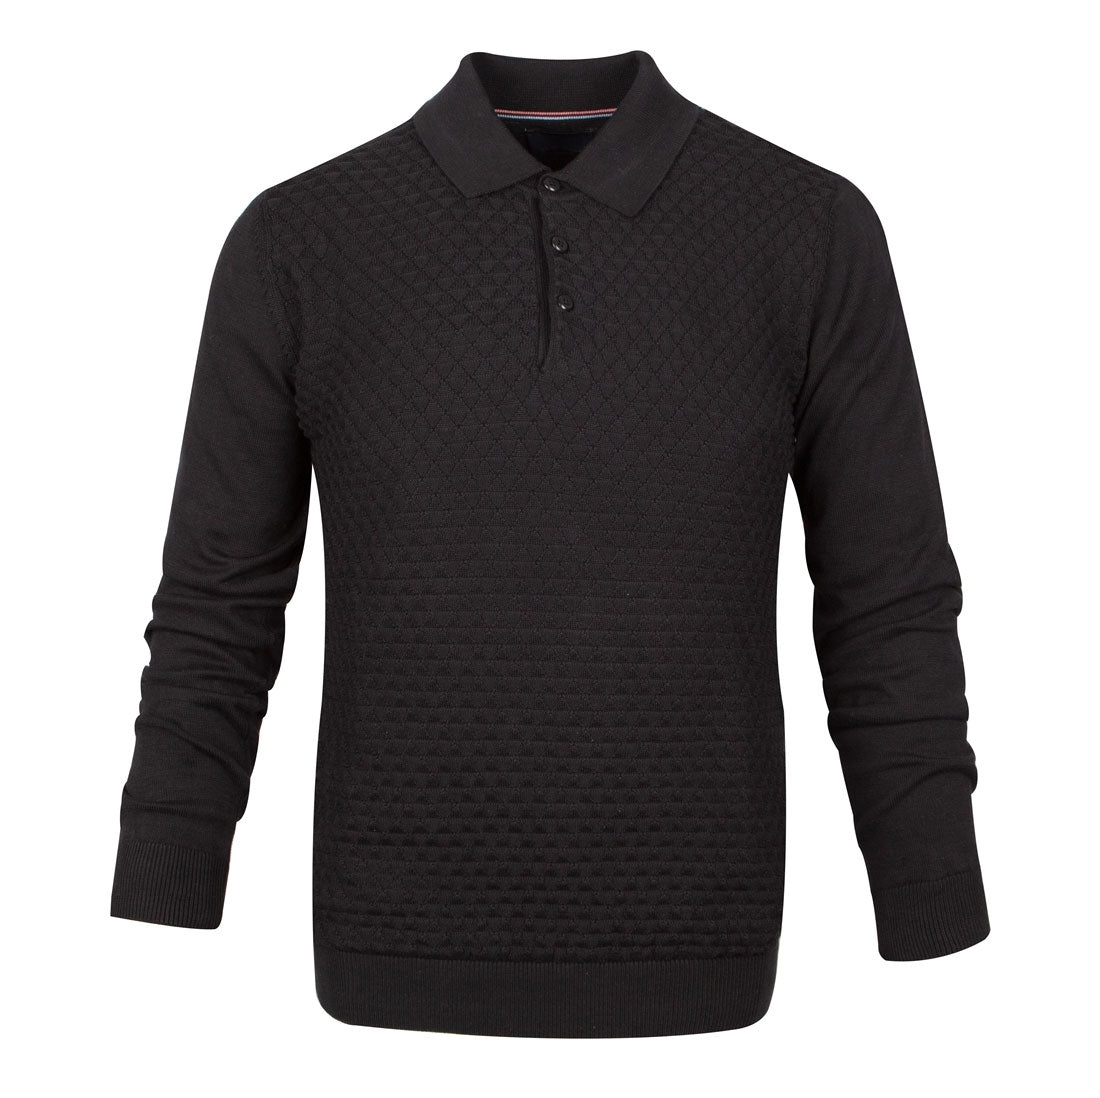 Guide London Premium Triangle Knit Stitch Polo Collar Jumper Black KW2698